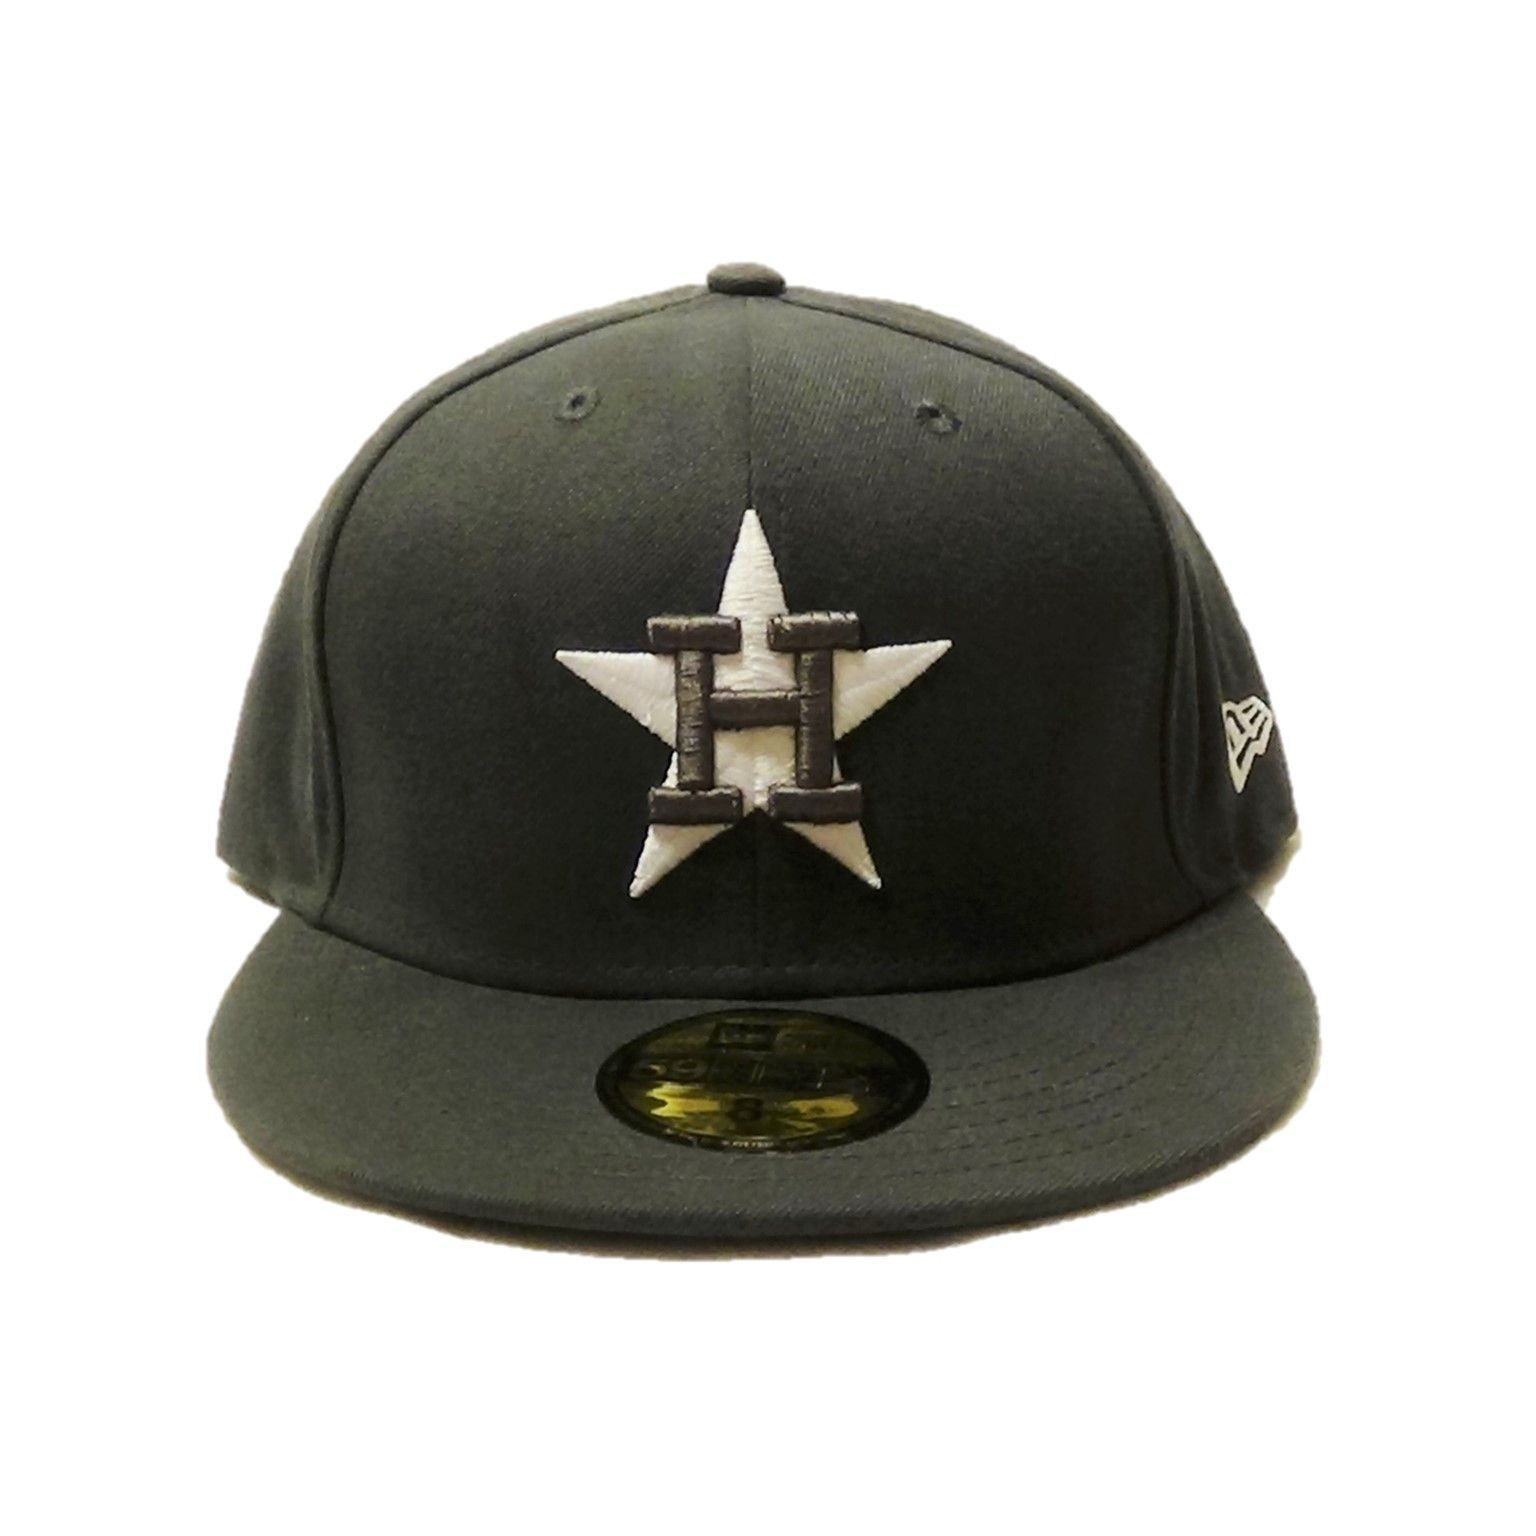 Houston Astros Fitted New Era 59fifty Hat Style CCW